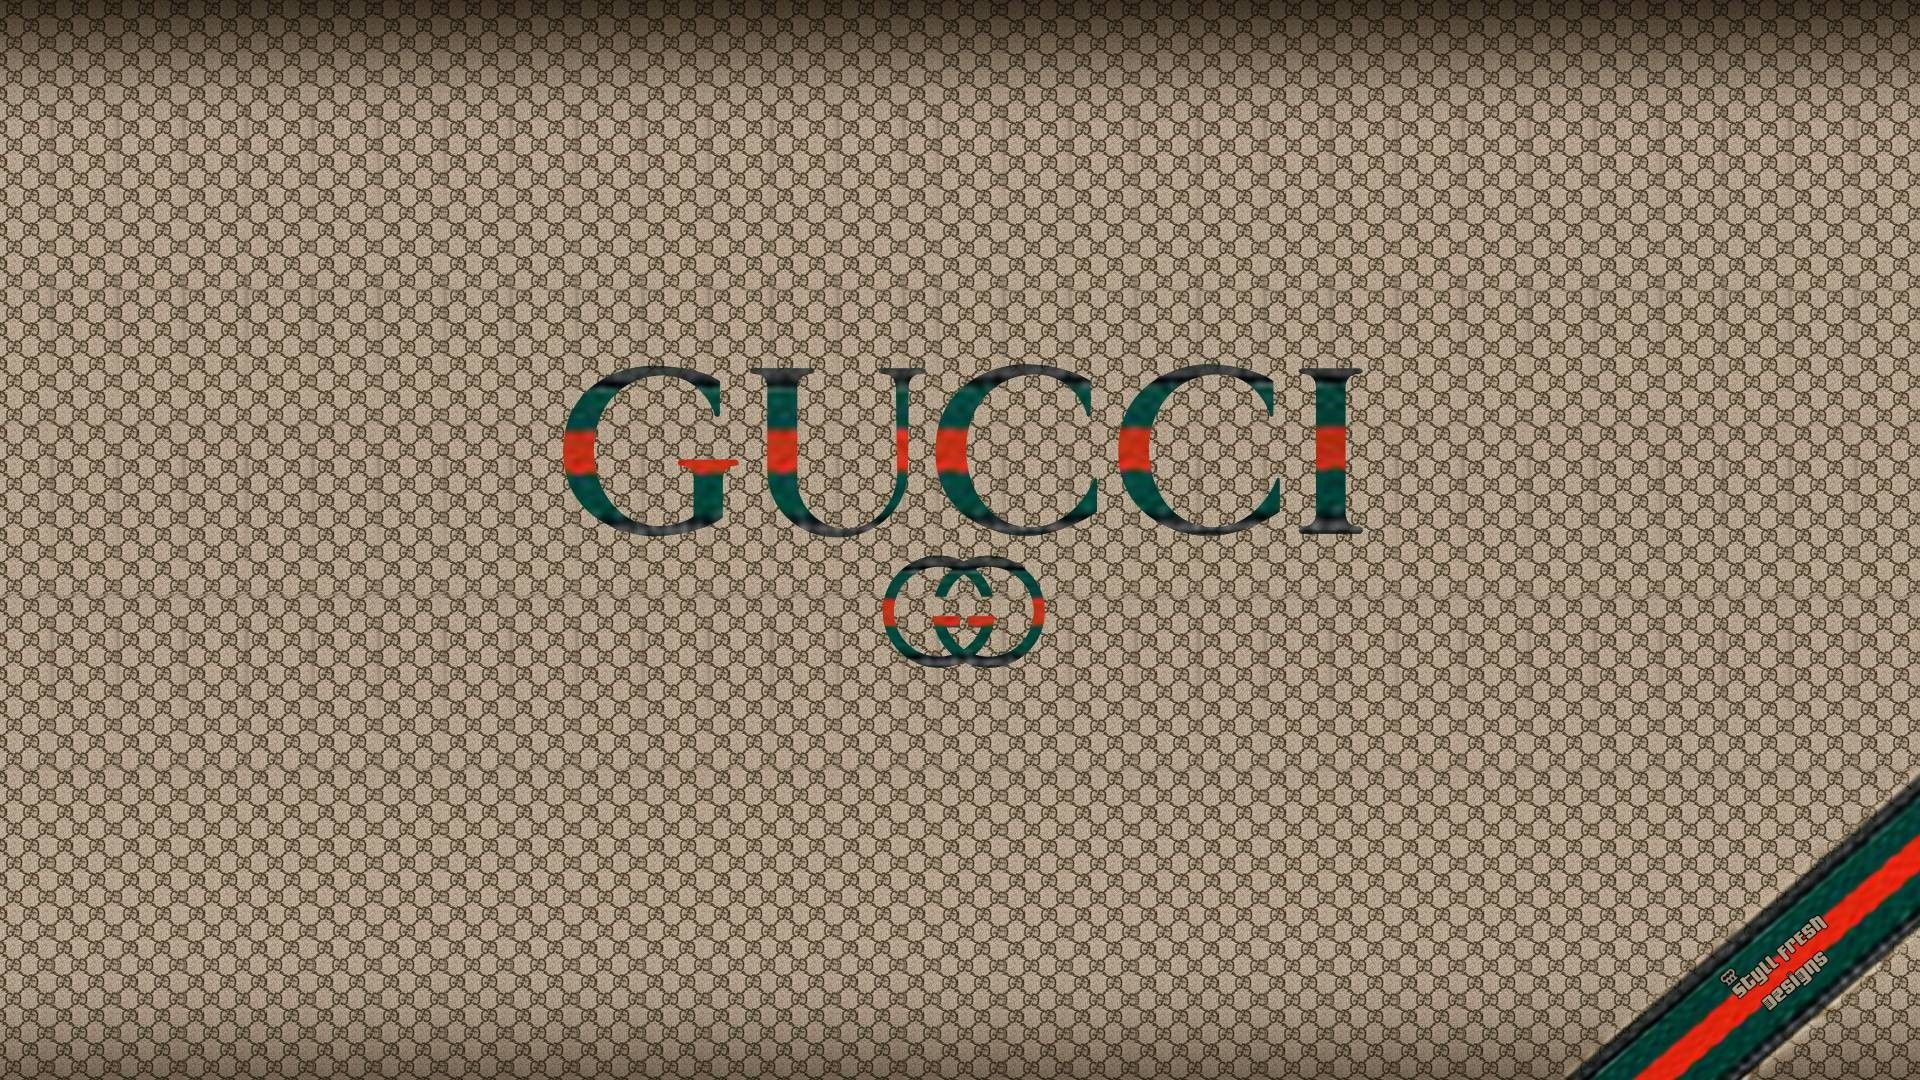 1920x1080 Gucci wallpaper ·① Download free amazing backgrounds for desktop ...